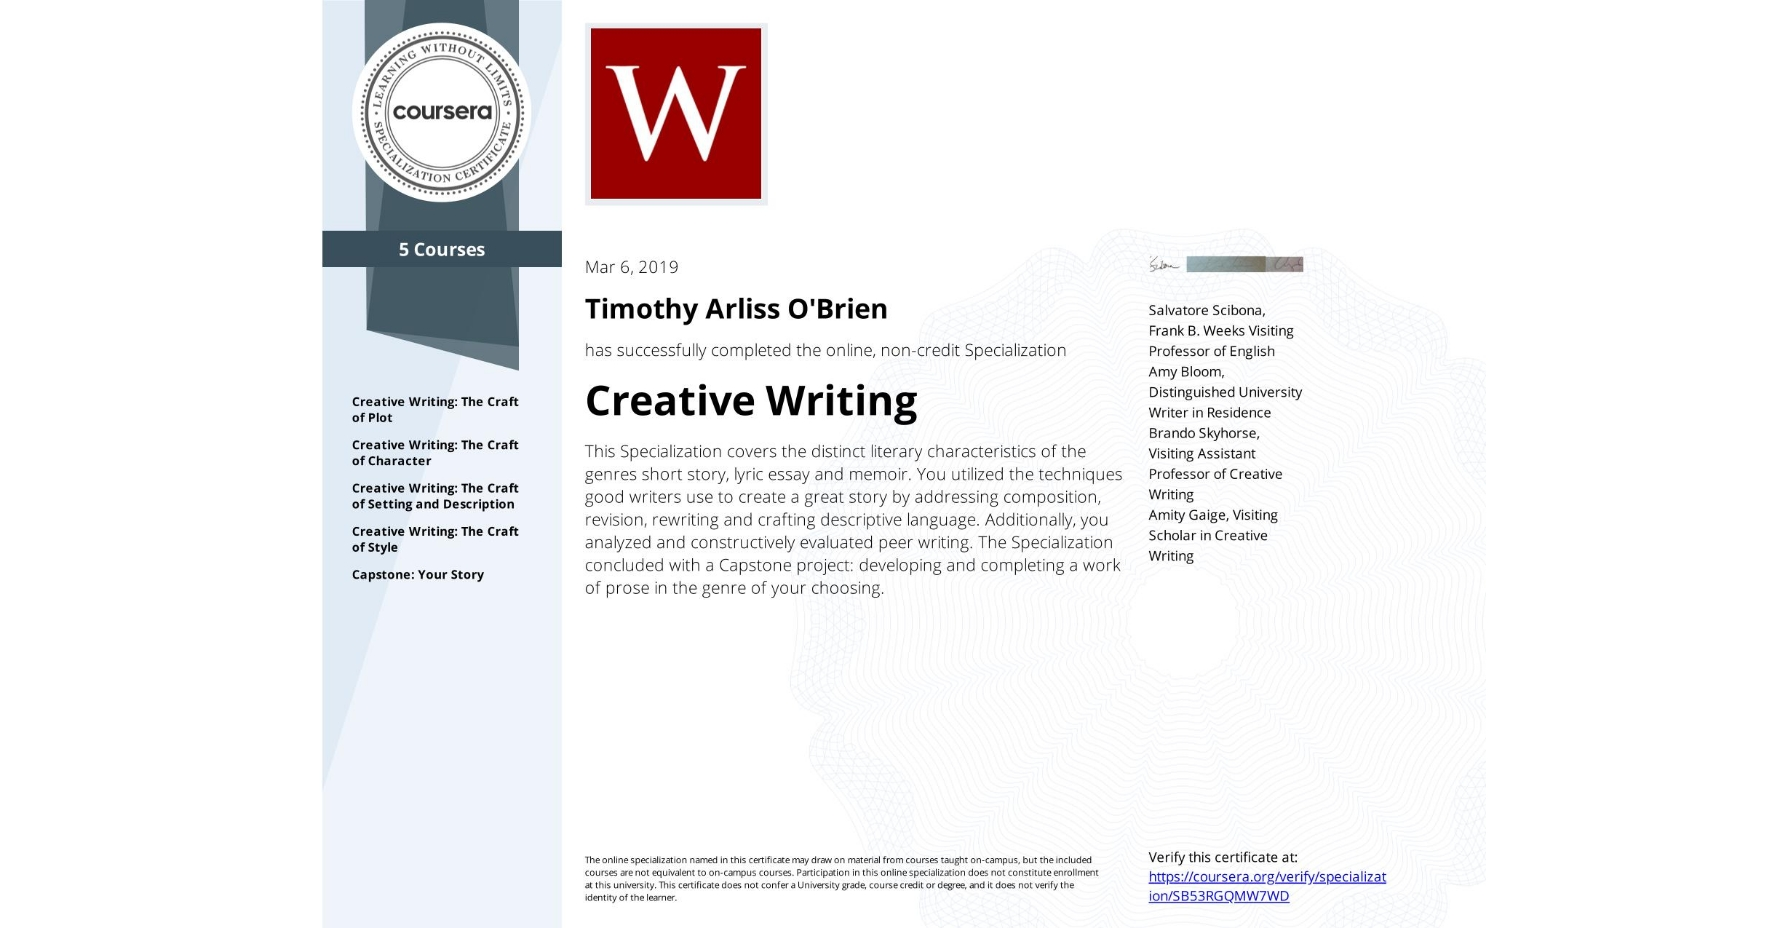 View certificate for Timothy Arliss O'Brien, Creative Writing, offered through Coursera. This Specialization covers the distinct literary characteristics of the genres short story, lyric essay and memoir. You utilized the techniques good writers use to create a great story by addressing composition, revision, rewriting and crafting descriptive language. Additionally, you analyzed and constructively evaluated peer writing. The Specialization concluded with a Capstone project: developing and completing a work of prose in the genre of your choosing.